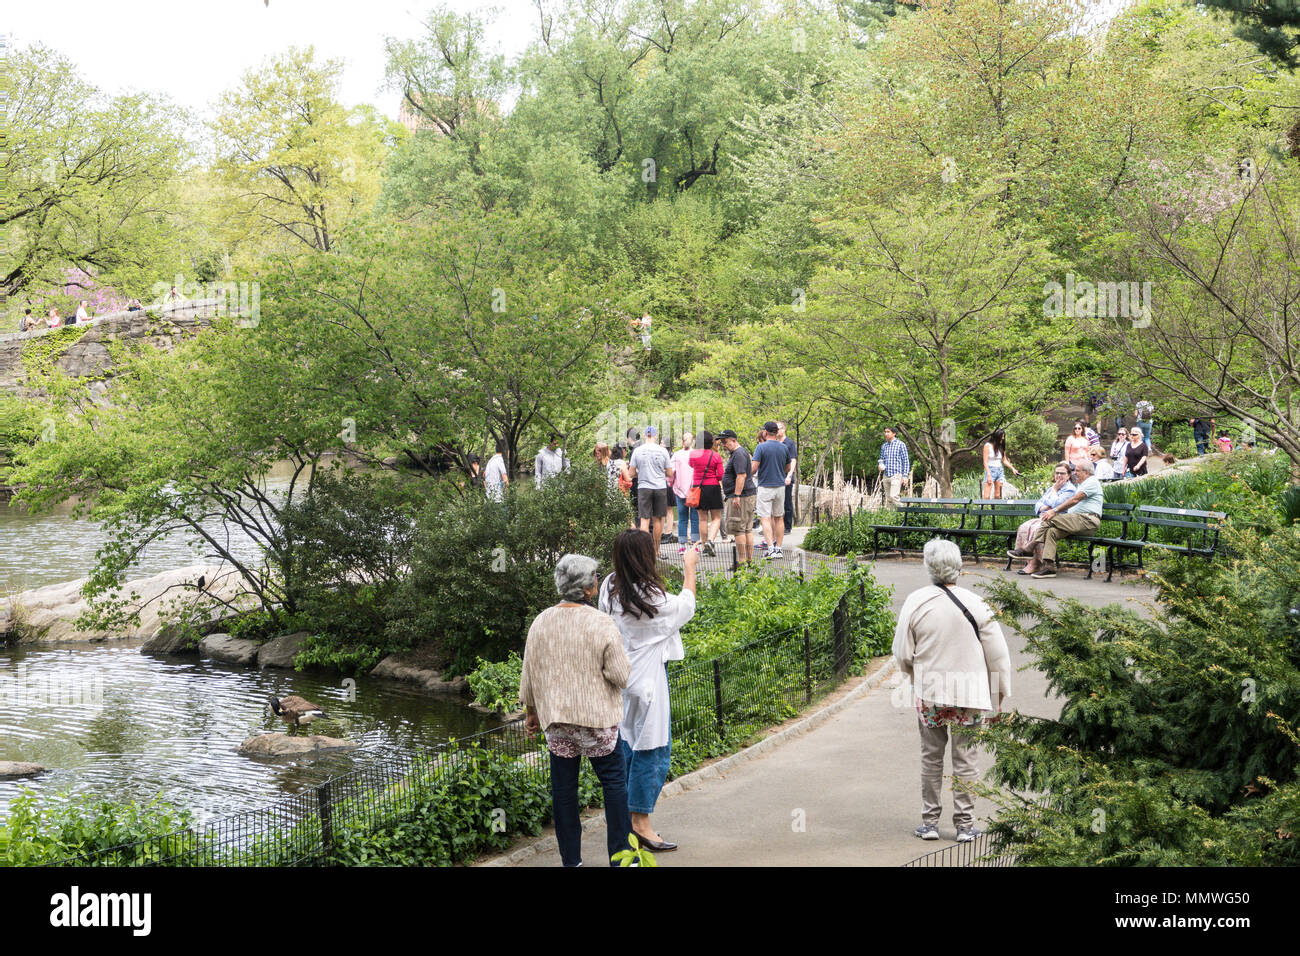 Tourists wander through Central Park on the Path next the Pond, NYC. USA - Stock Image